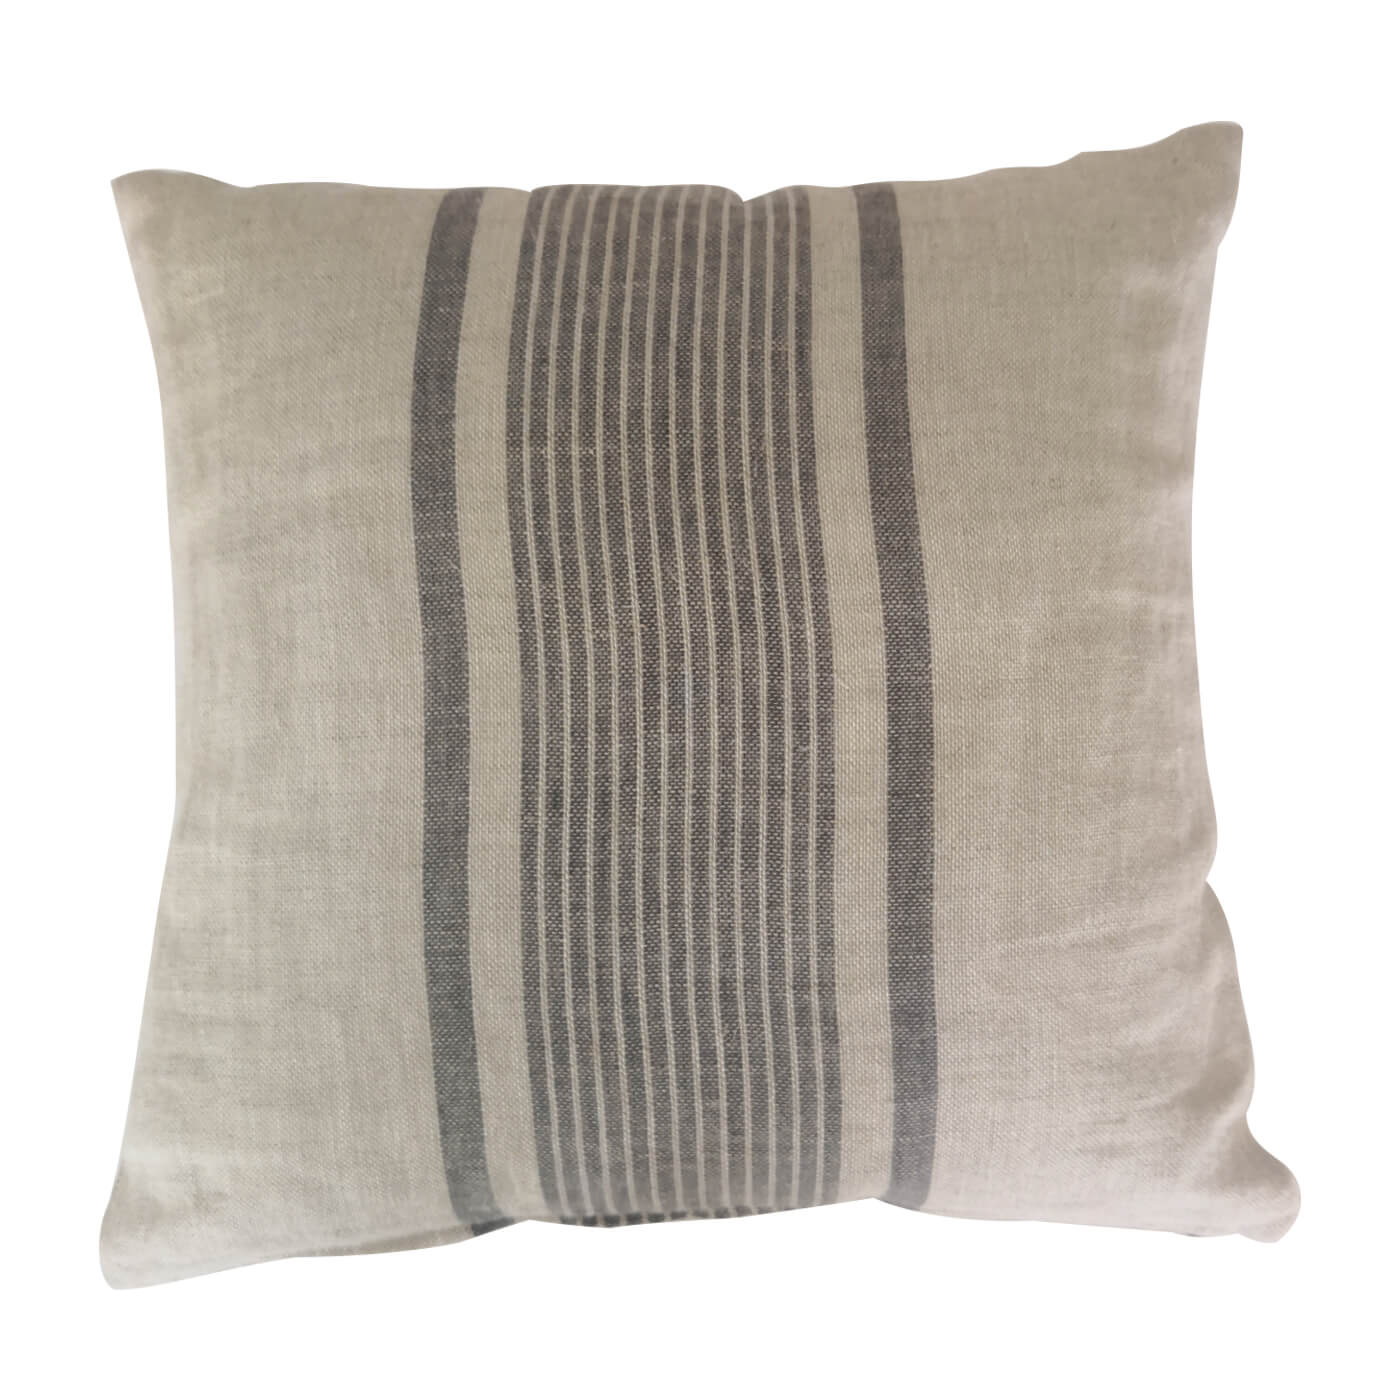 Pair of grey striped linen cushions